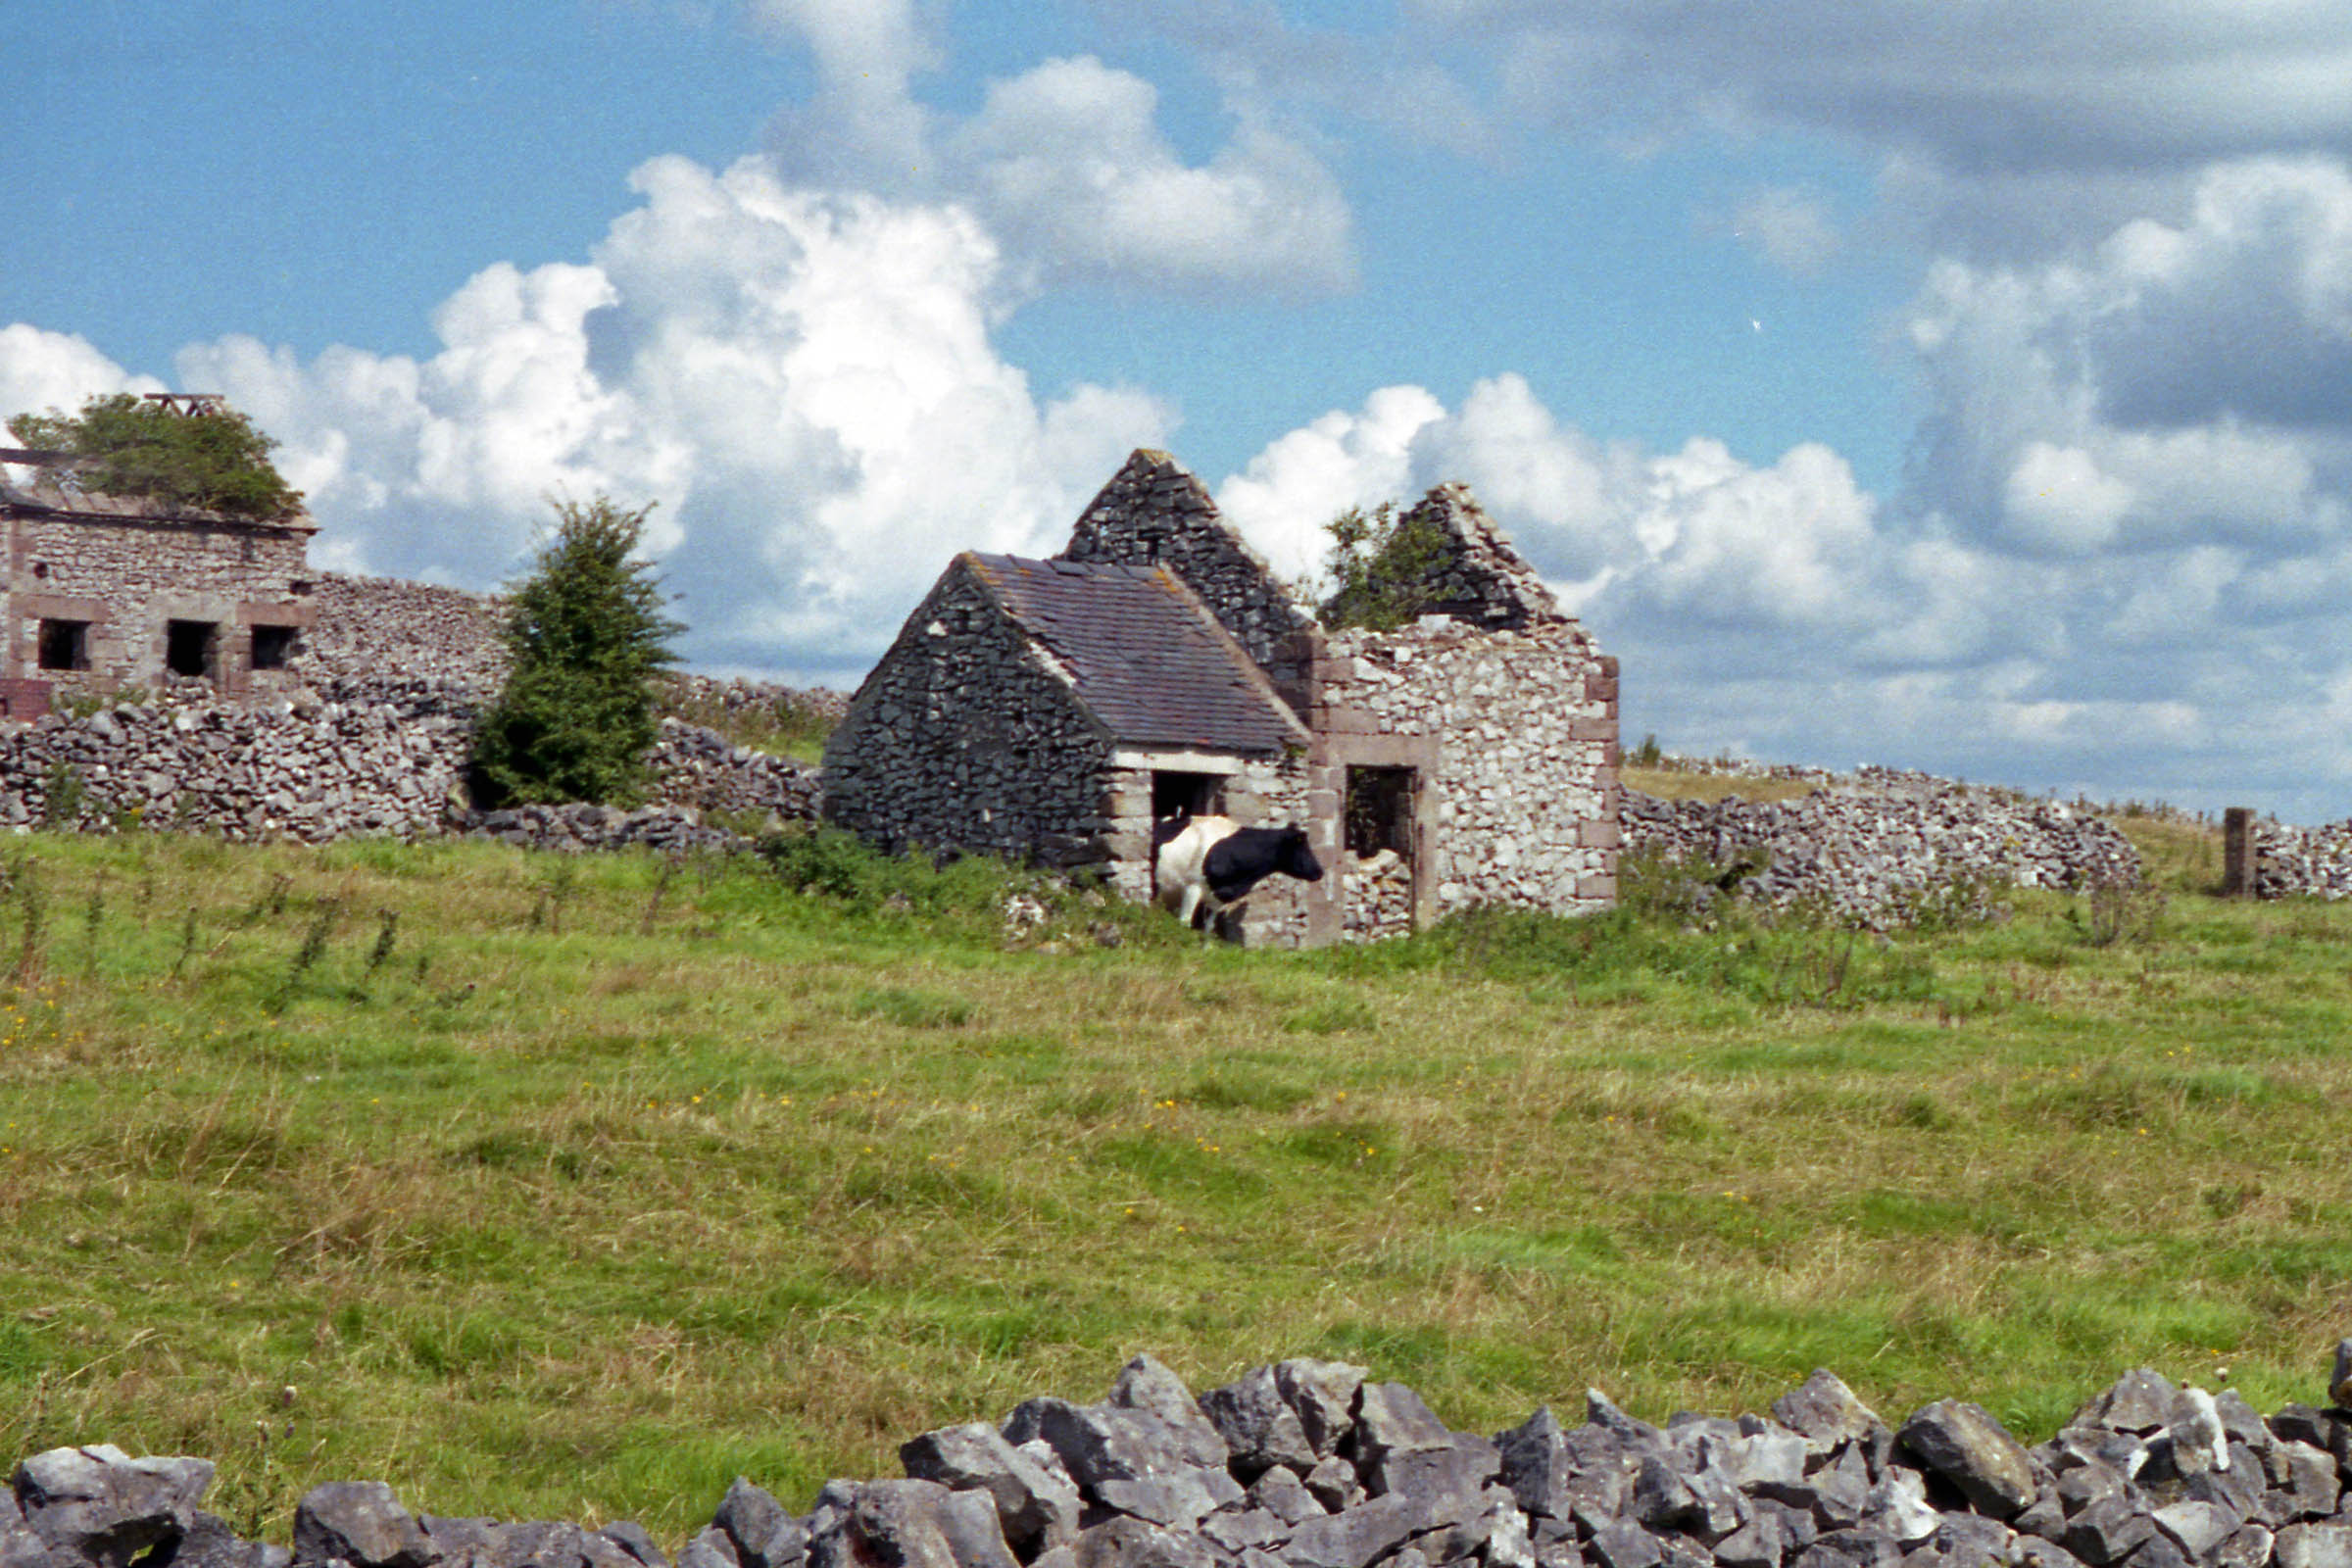 Cow in abandoned stone cottage, Peak District, UK, 2000.